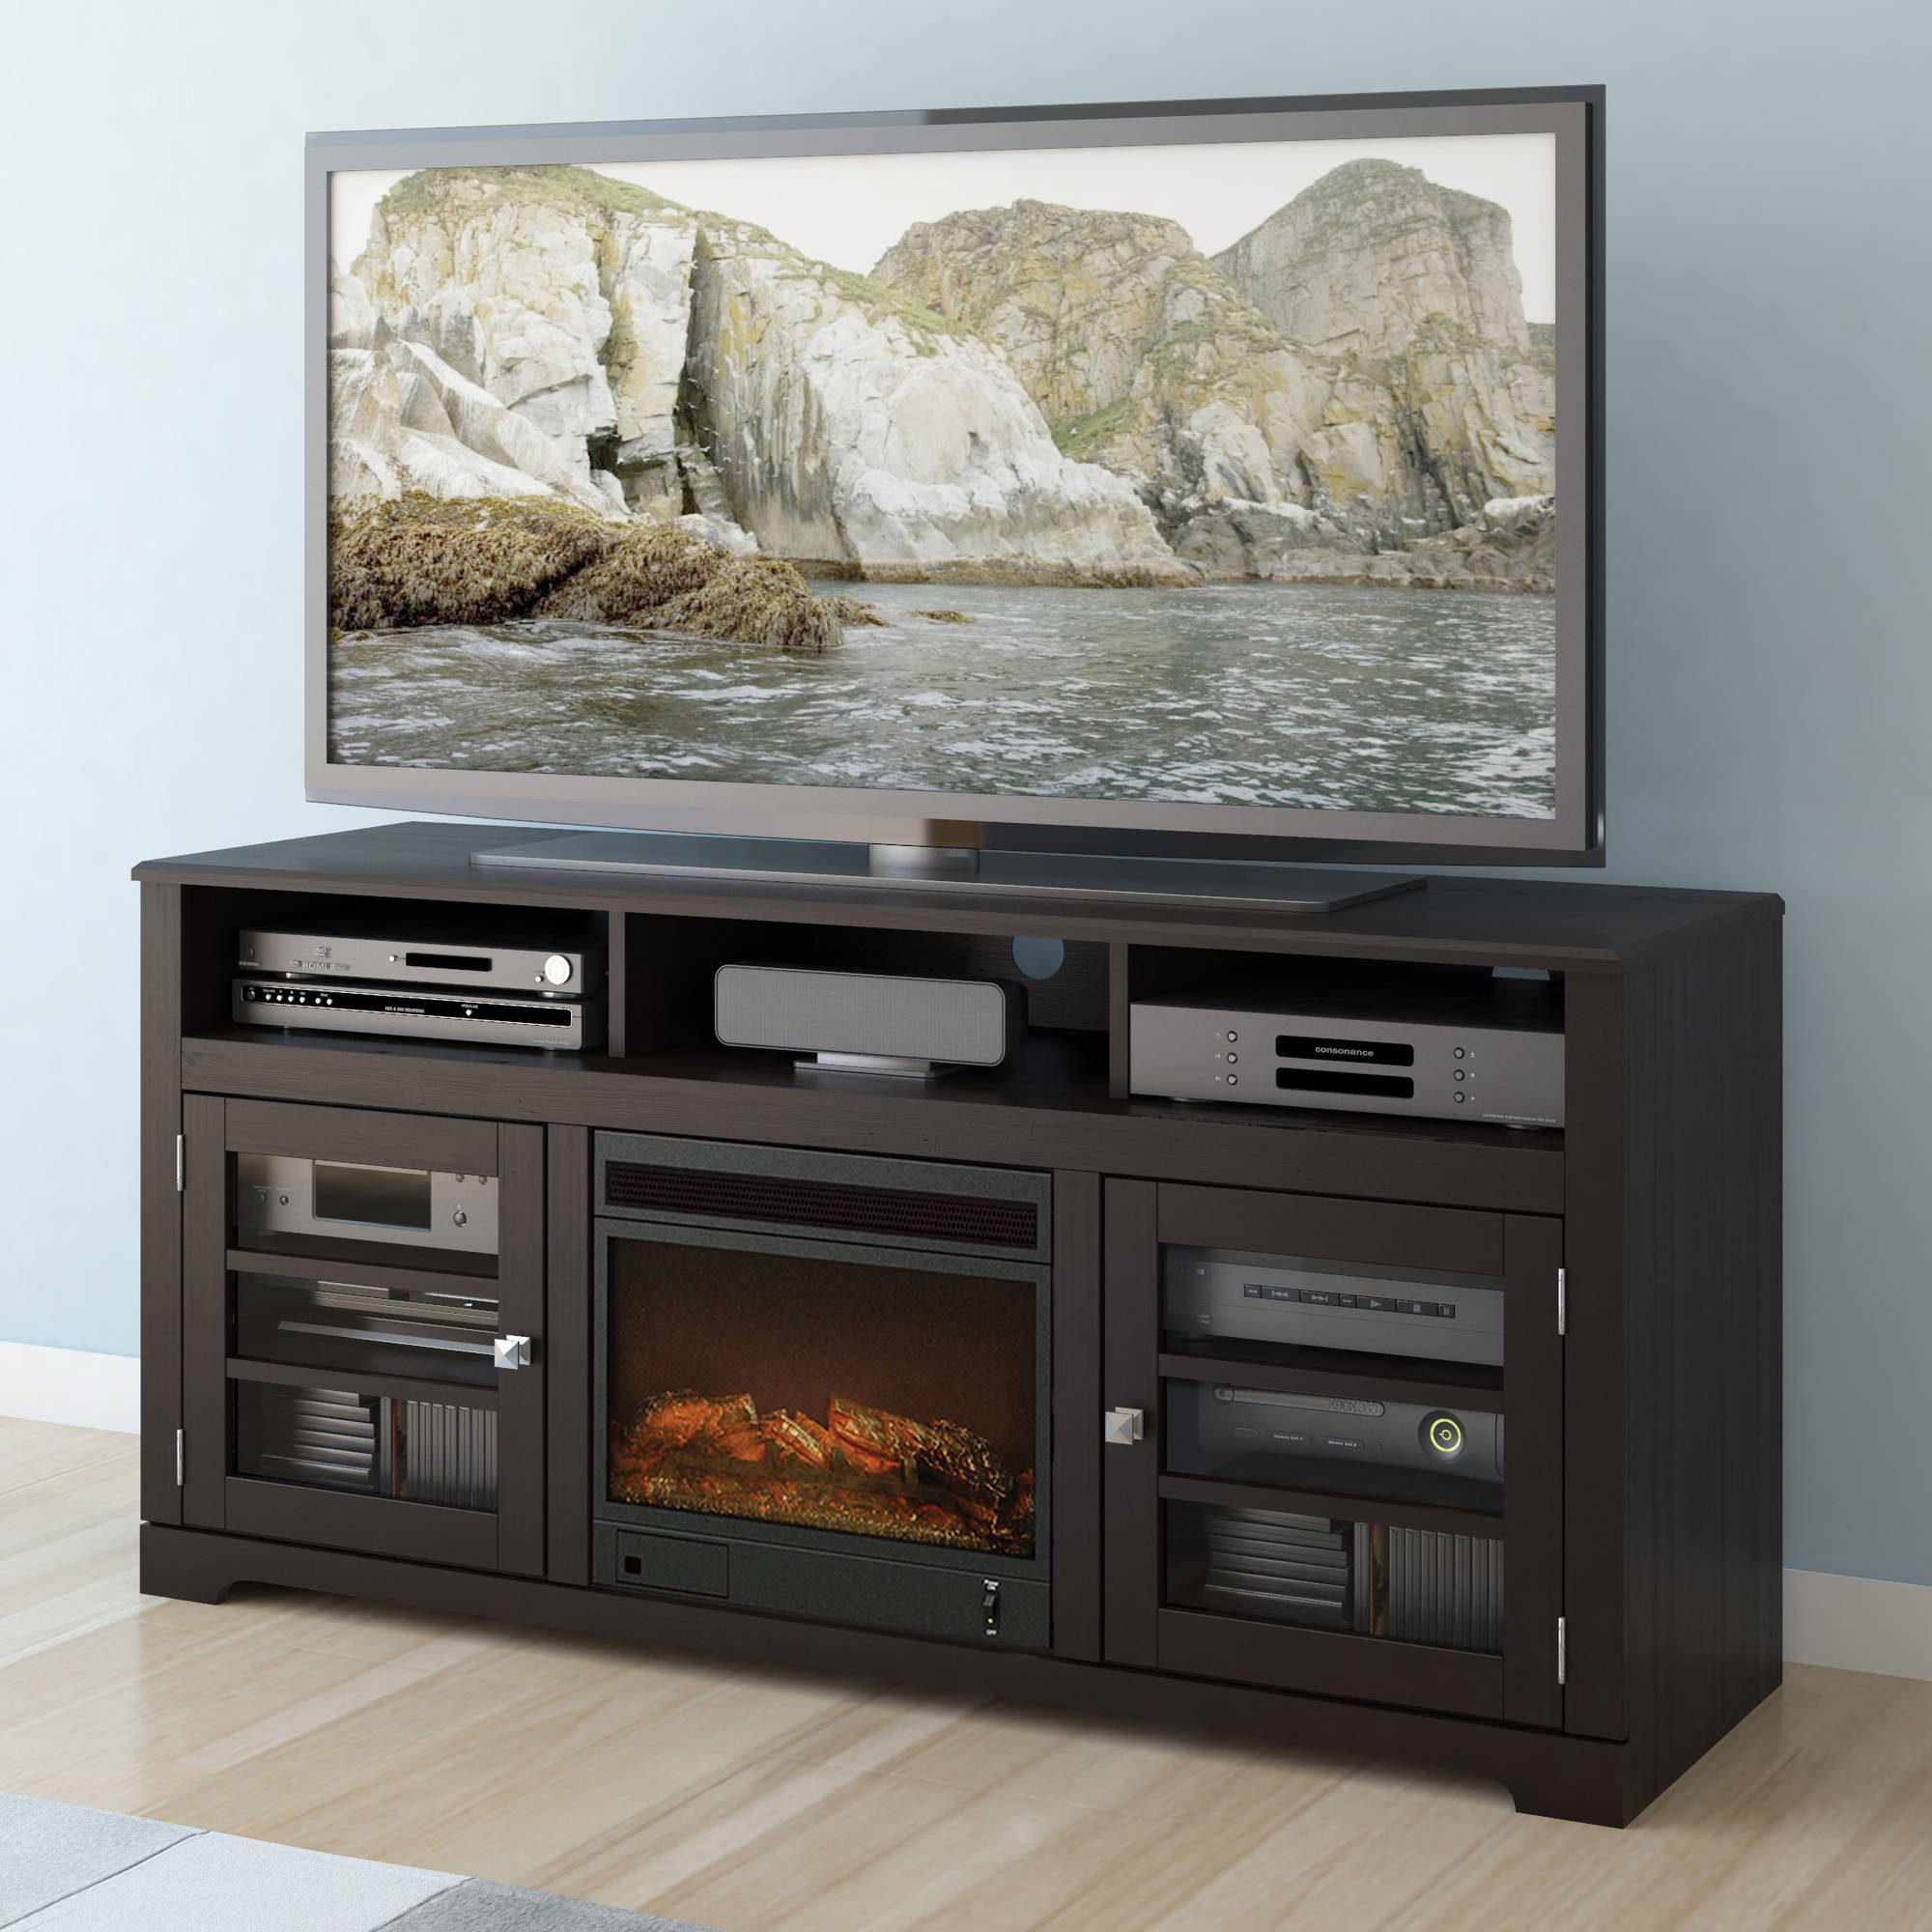 CorLiving West Lake Fireplace Bench for TVs up to 68""